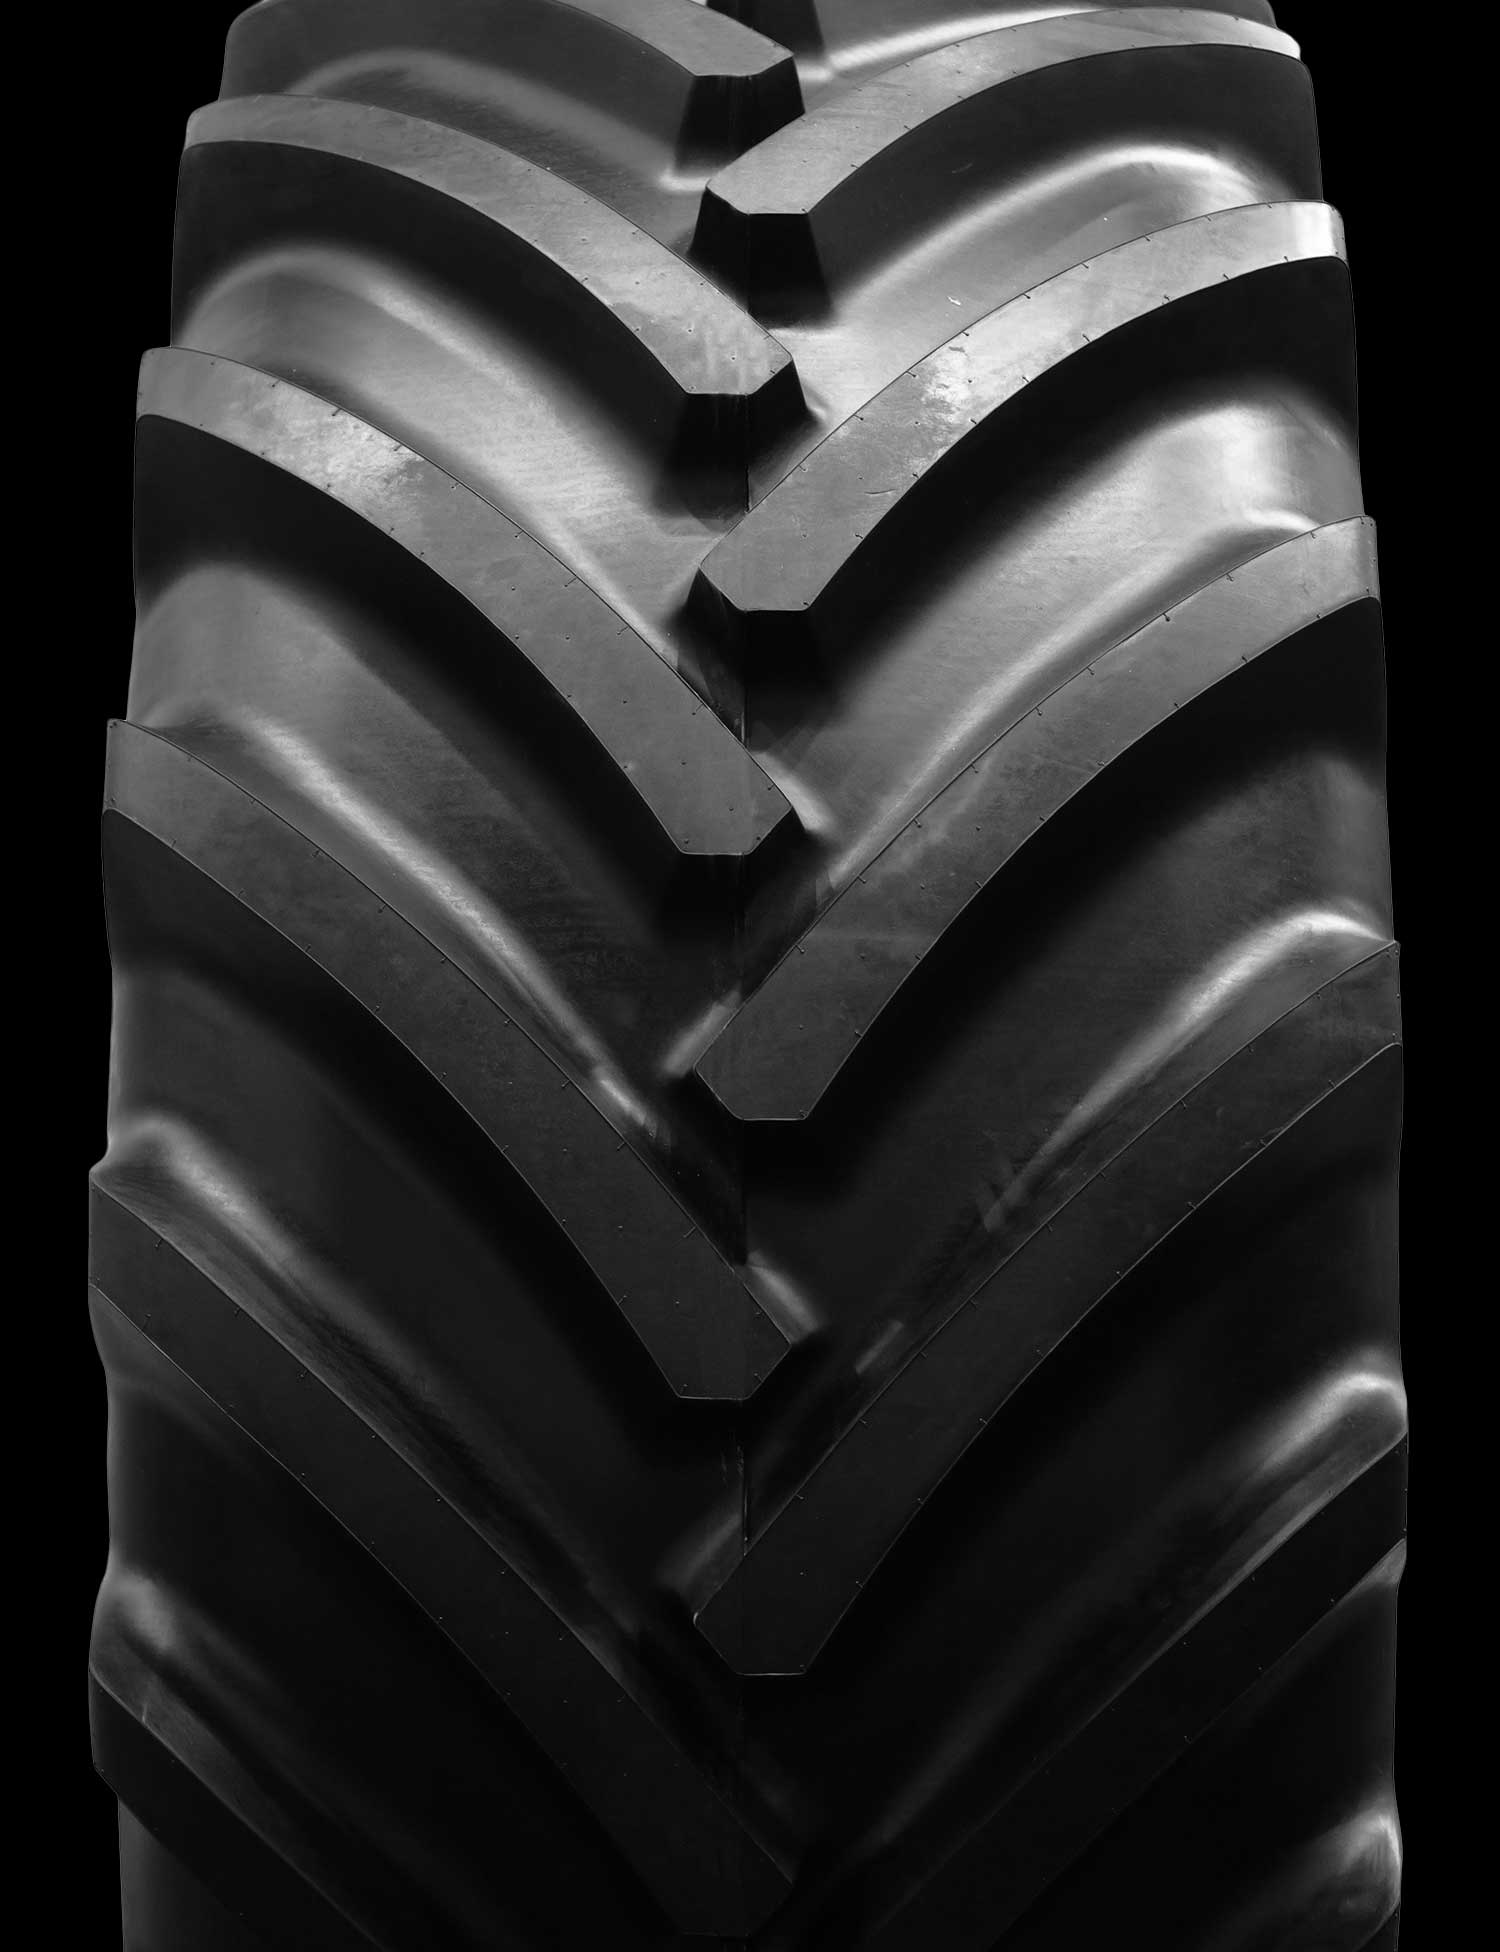 A new tractor tire